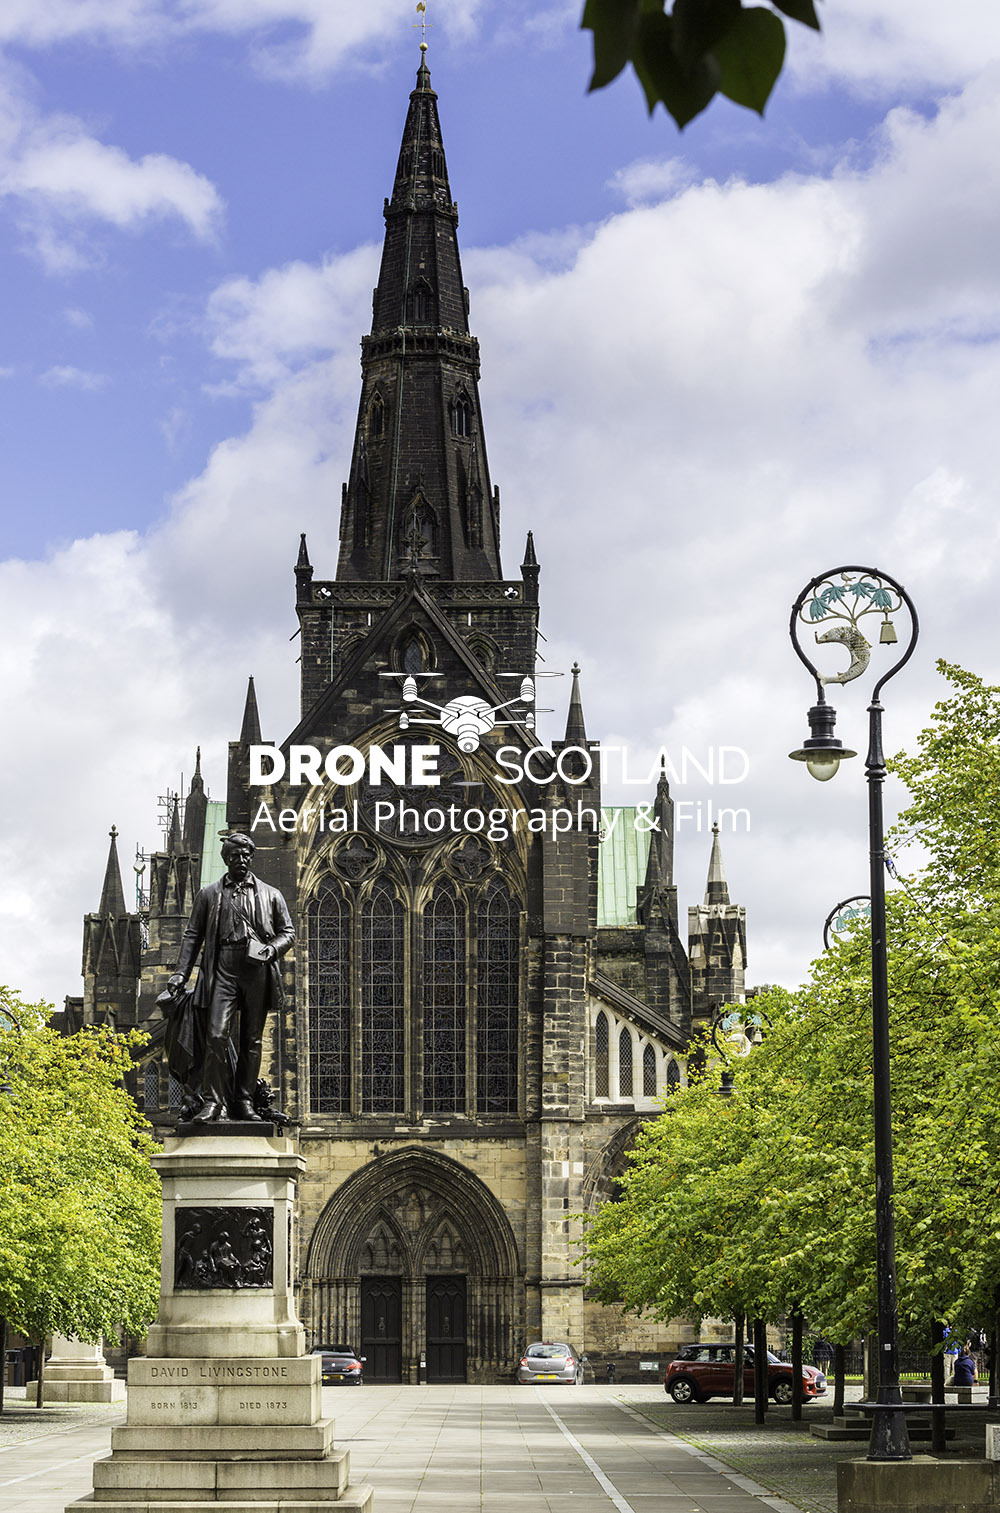 Glasgow Cathedral Image from a Drone 4